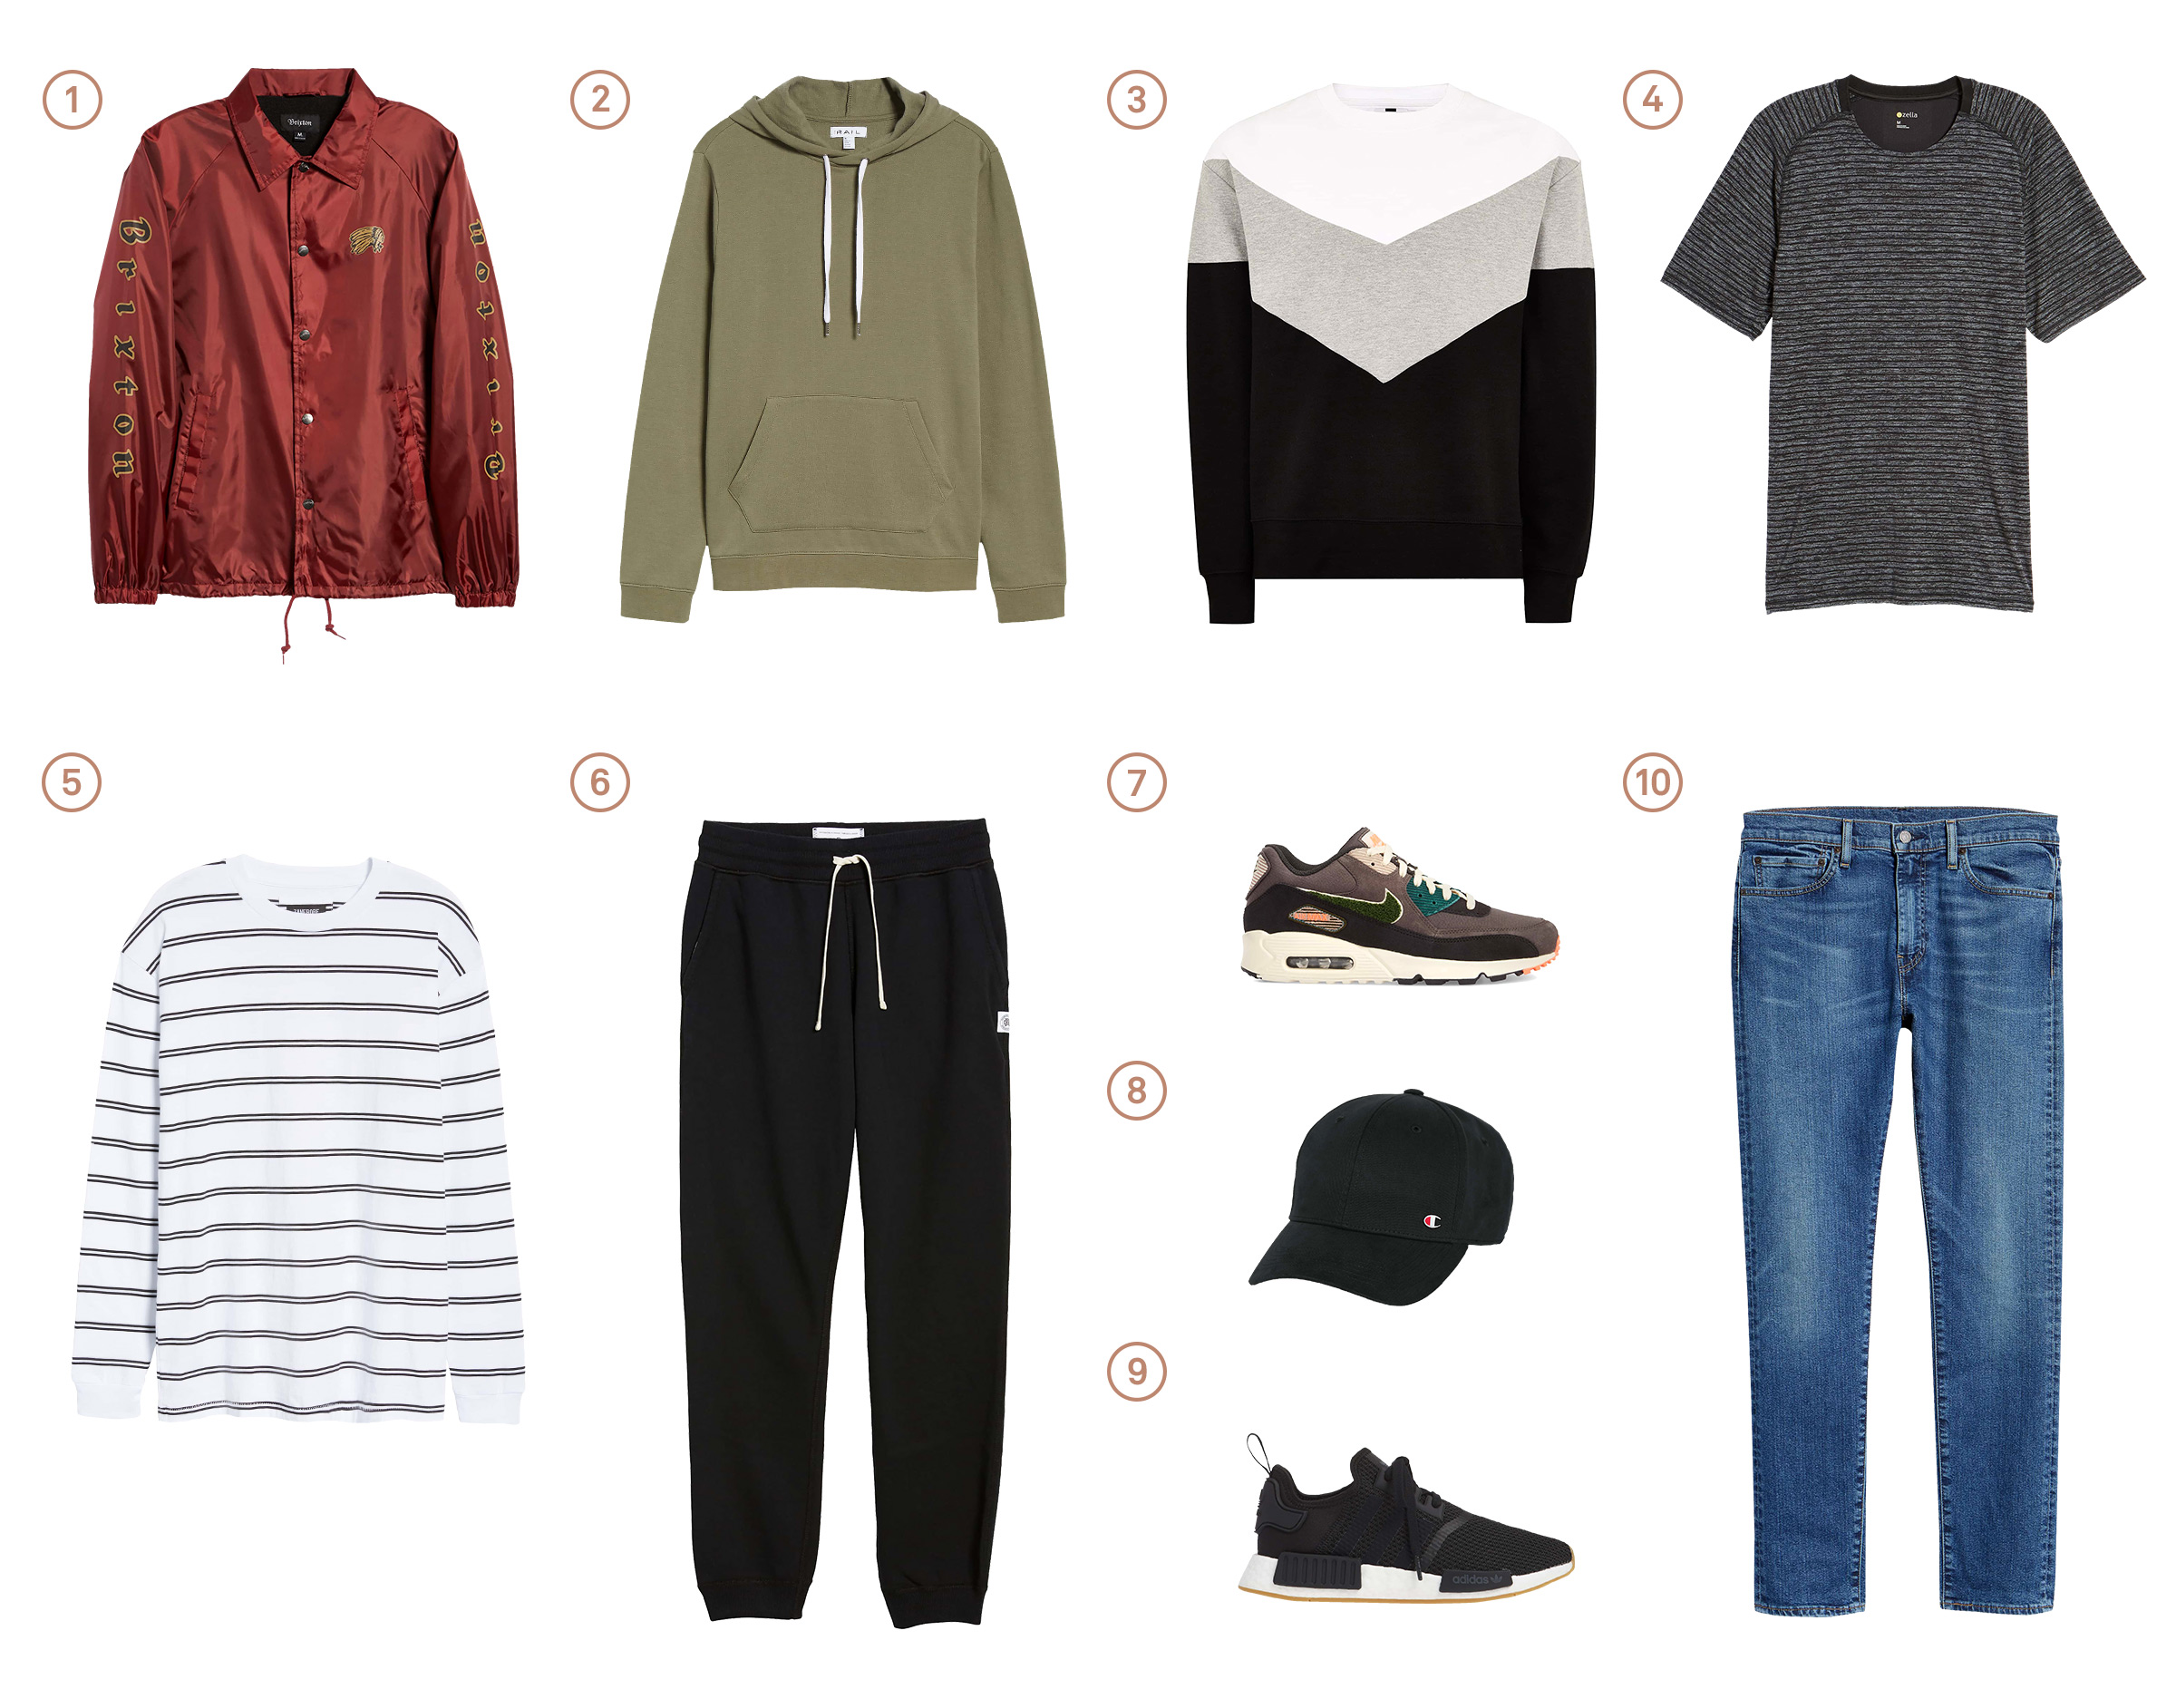 Men's capsule wardrobe with ten items of sport forward menswear.